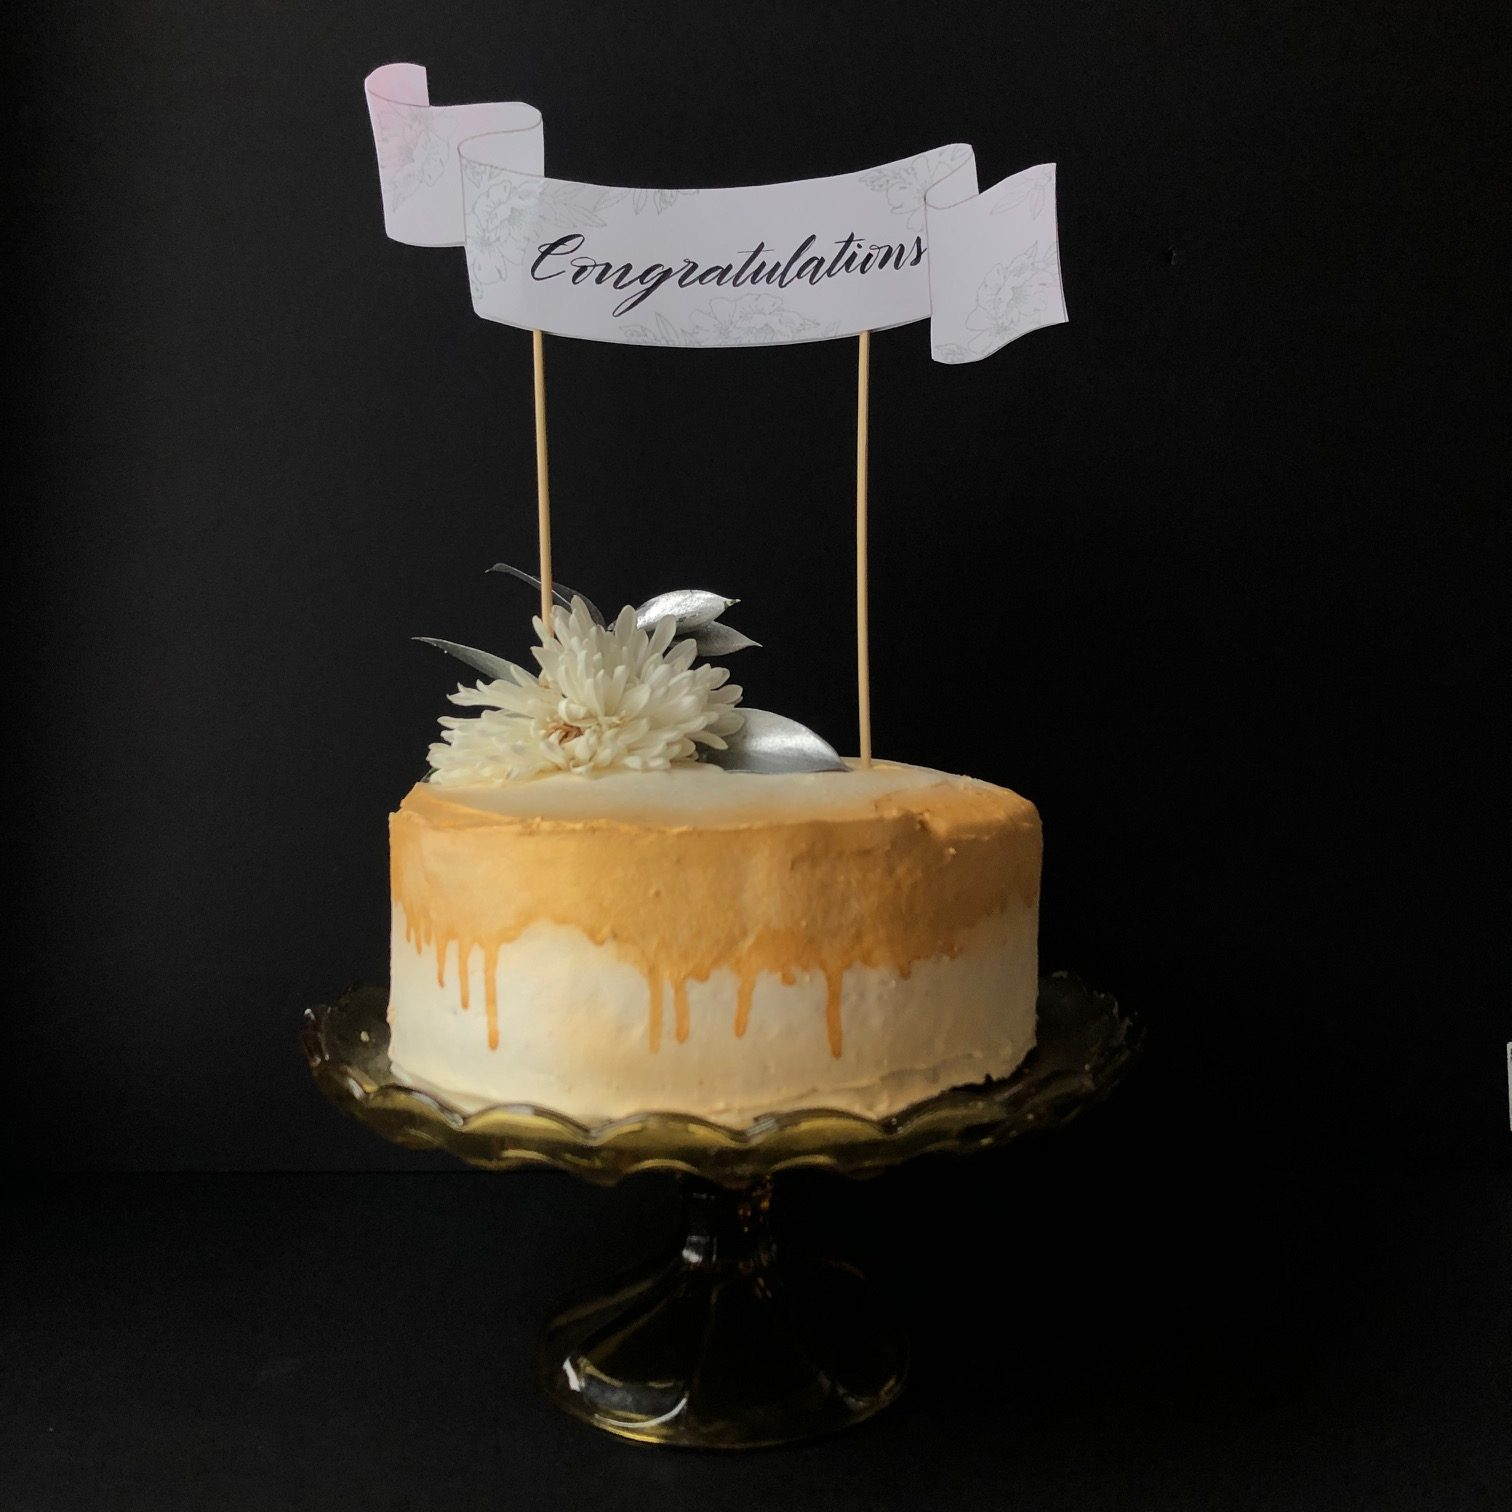 DIY Cake Topper With Hand Lettering